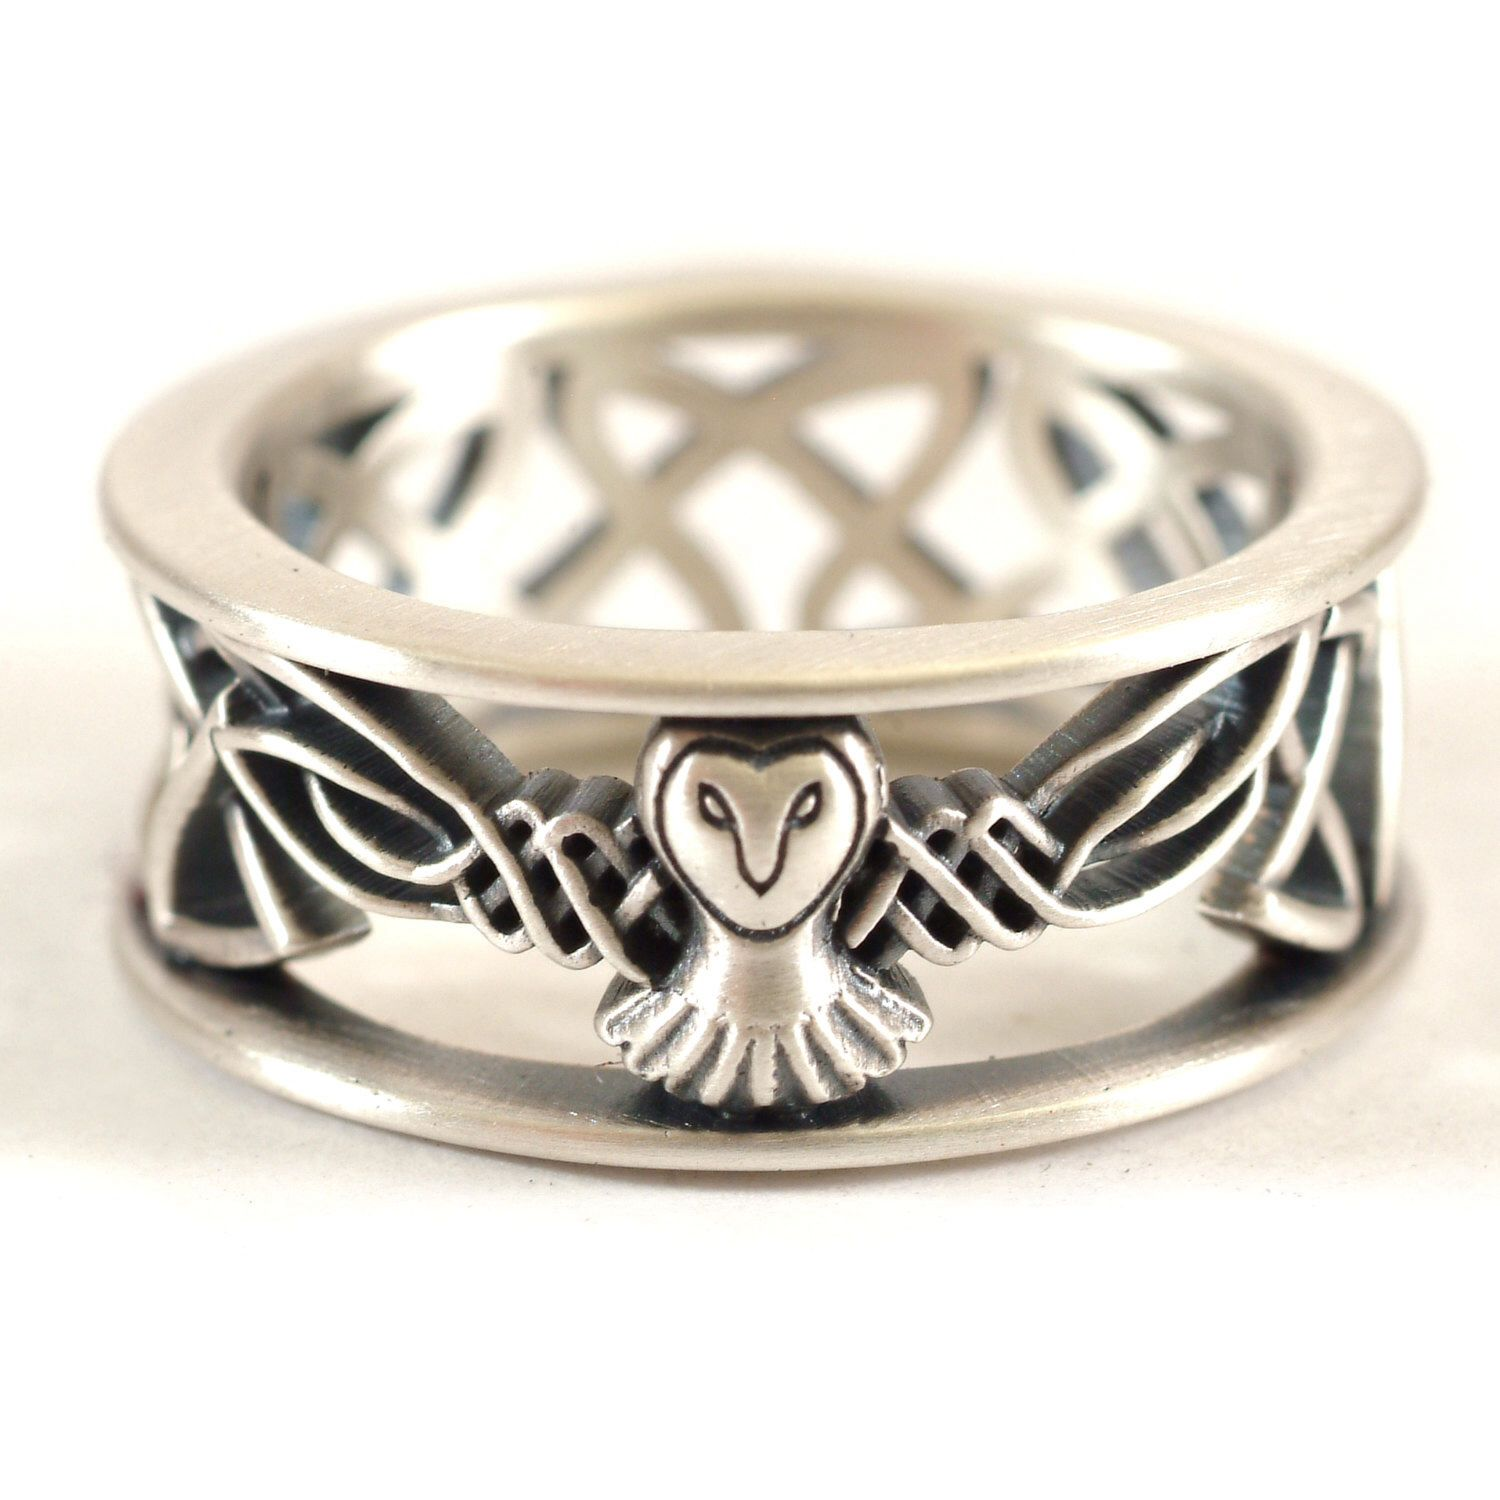 Sterling Silver Owl Wedding Band Celtic Owl Ring Mens Wedding Band Irish Wedding Ring Owl Jewelry Celtic Knot Ring Custom Size Cr 1016 Rings For Men Sterling Silver Owl Celtic Knot Ring